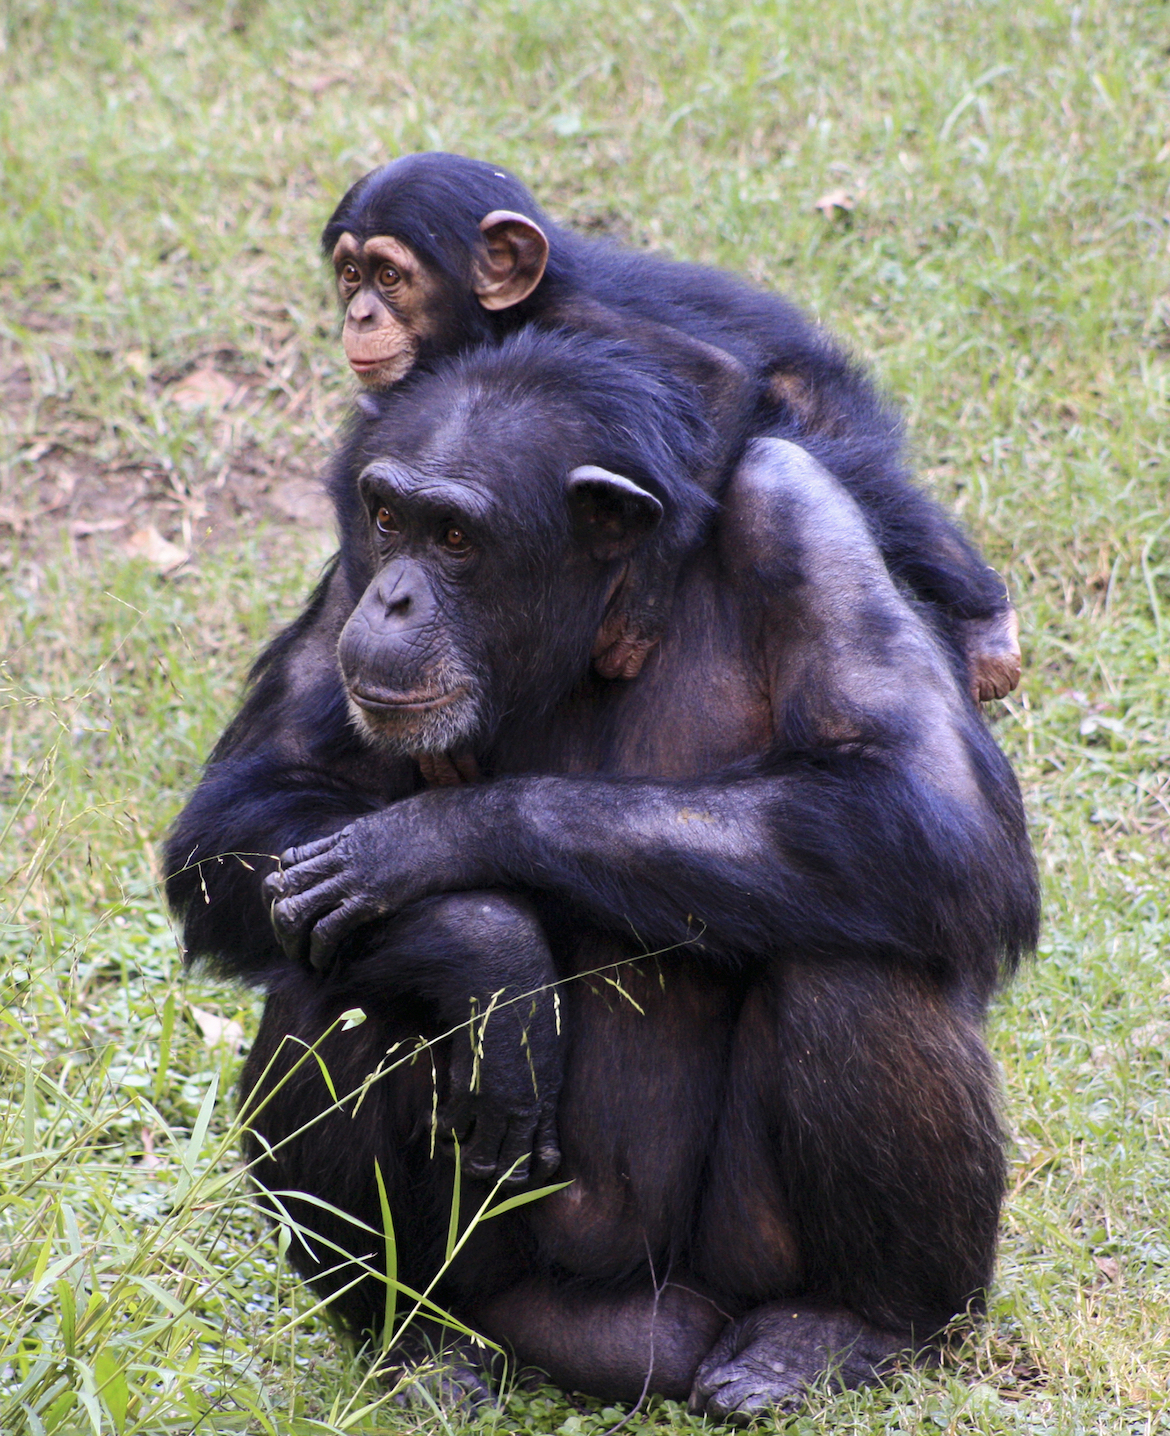 Passing skills down through the generations, once believed to an exclusive human trait, has been discovered in chimpanzees.